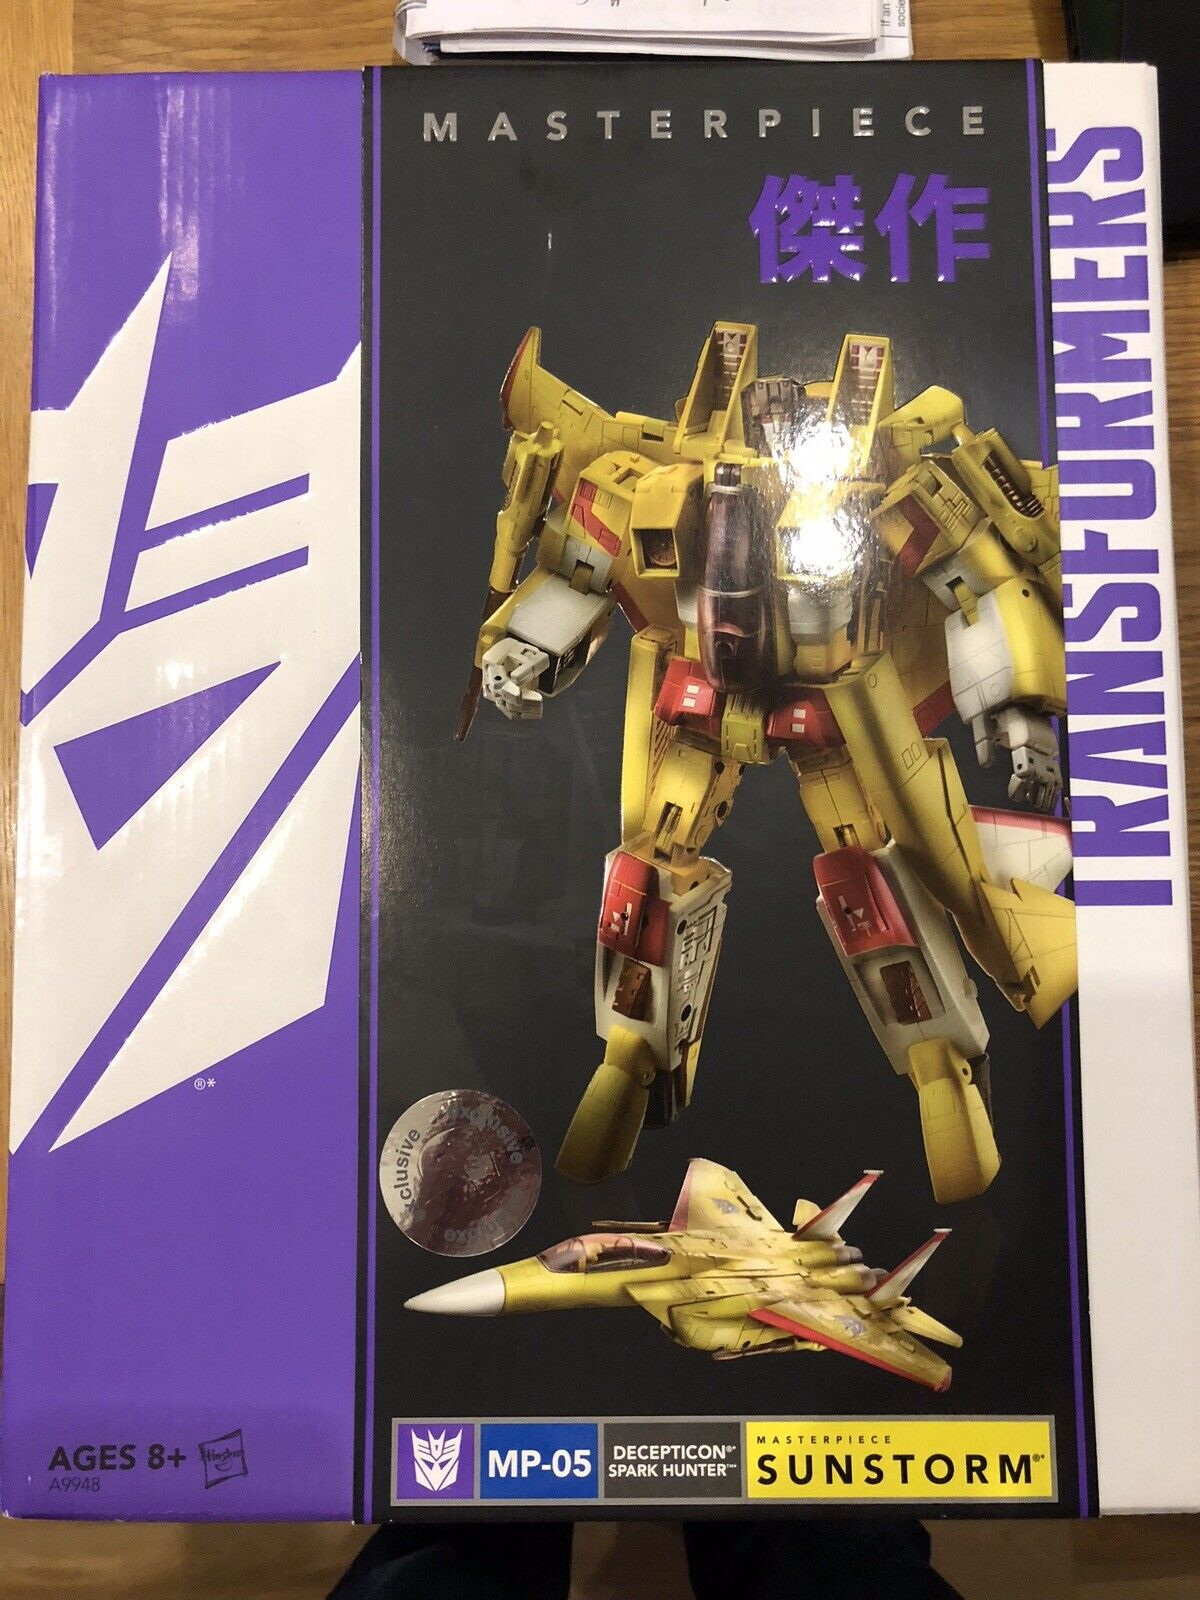 Transformers Habro Masterpiece Sunstorm Misb MP-05